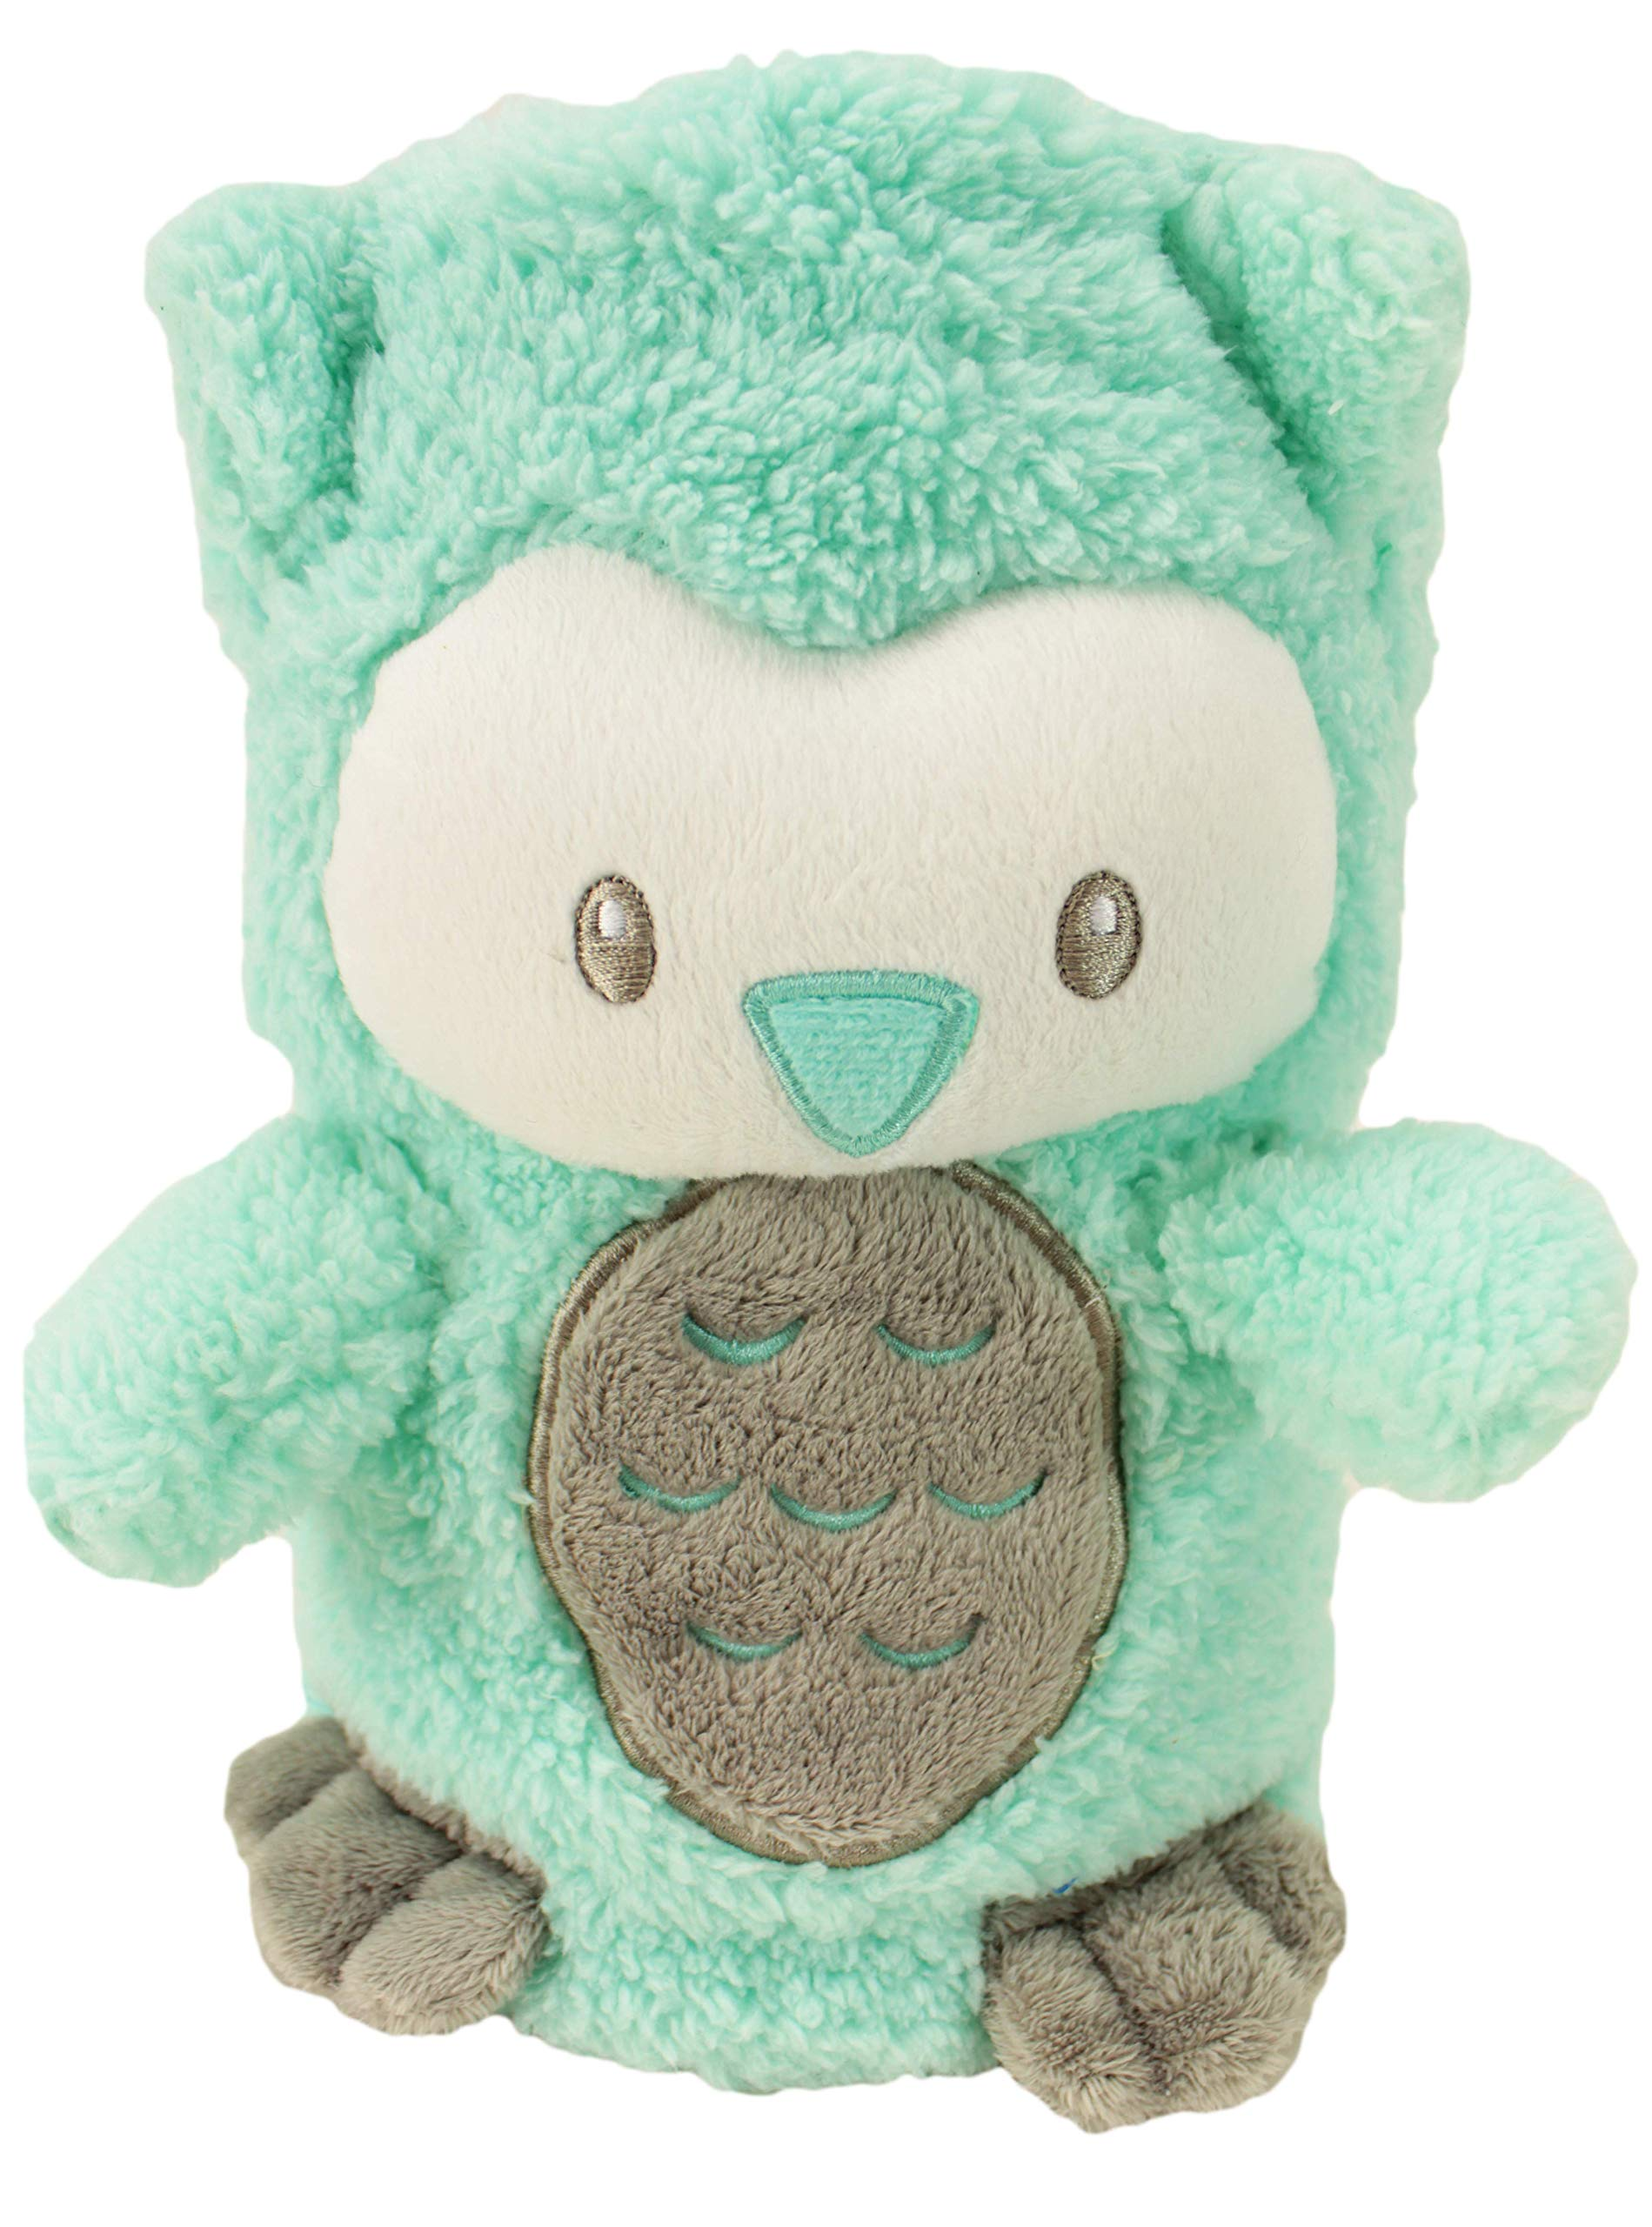 My Pet Blankie Original, Ultra Soft, 3-in-1-Blanket, Pillow, Plush Toy, Teal Owl, 26'' L x 39'' W, Machine Washable Children Ages 2+